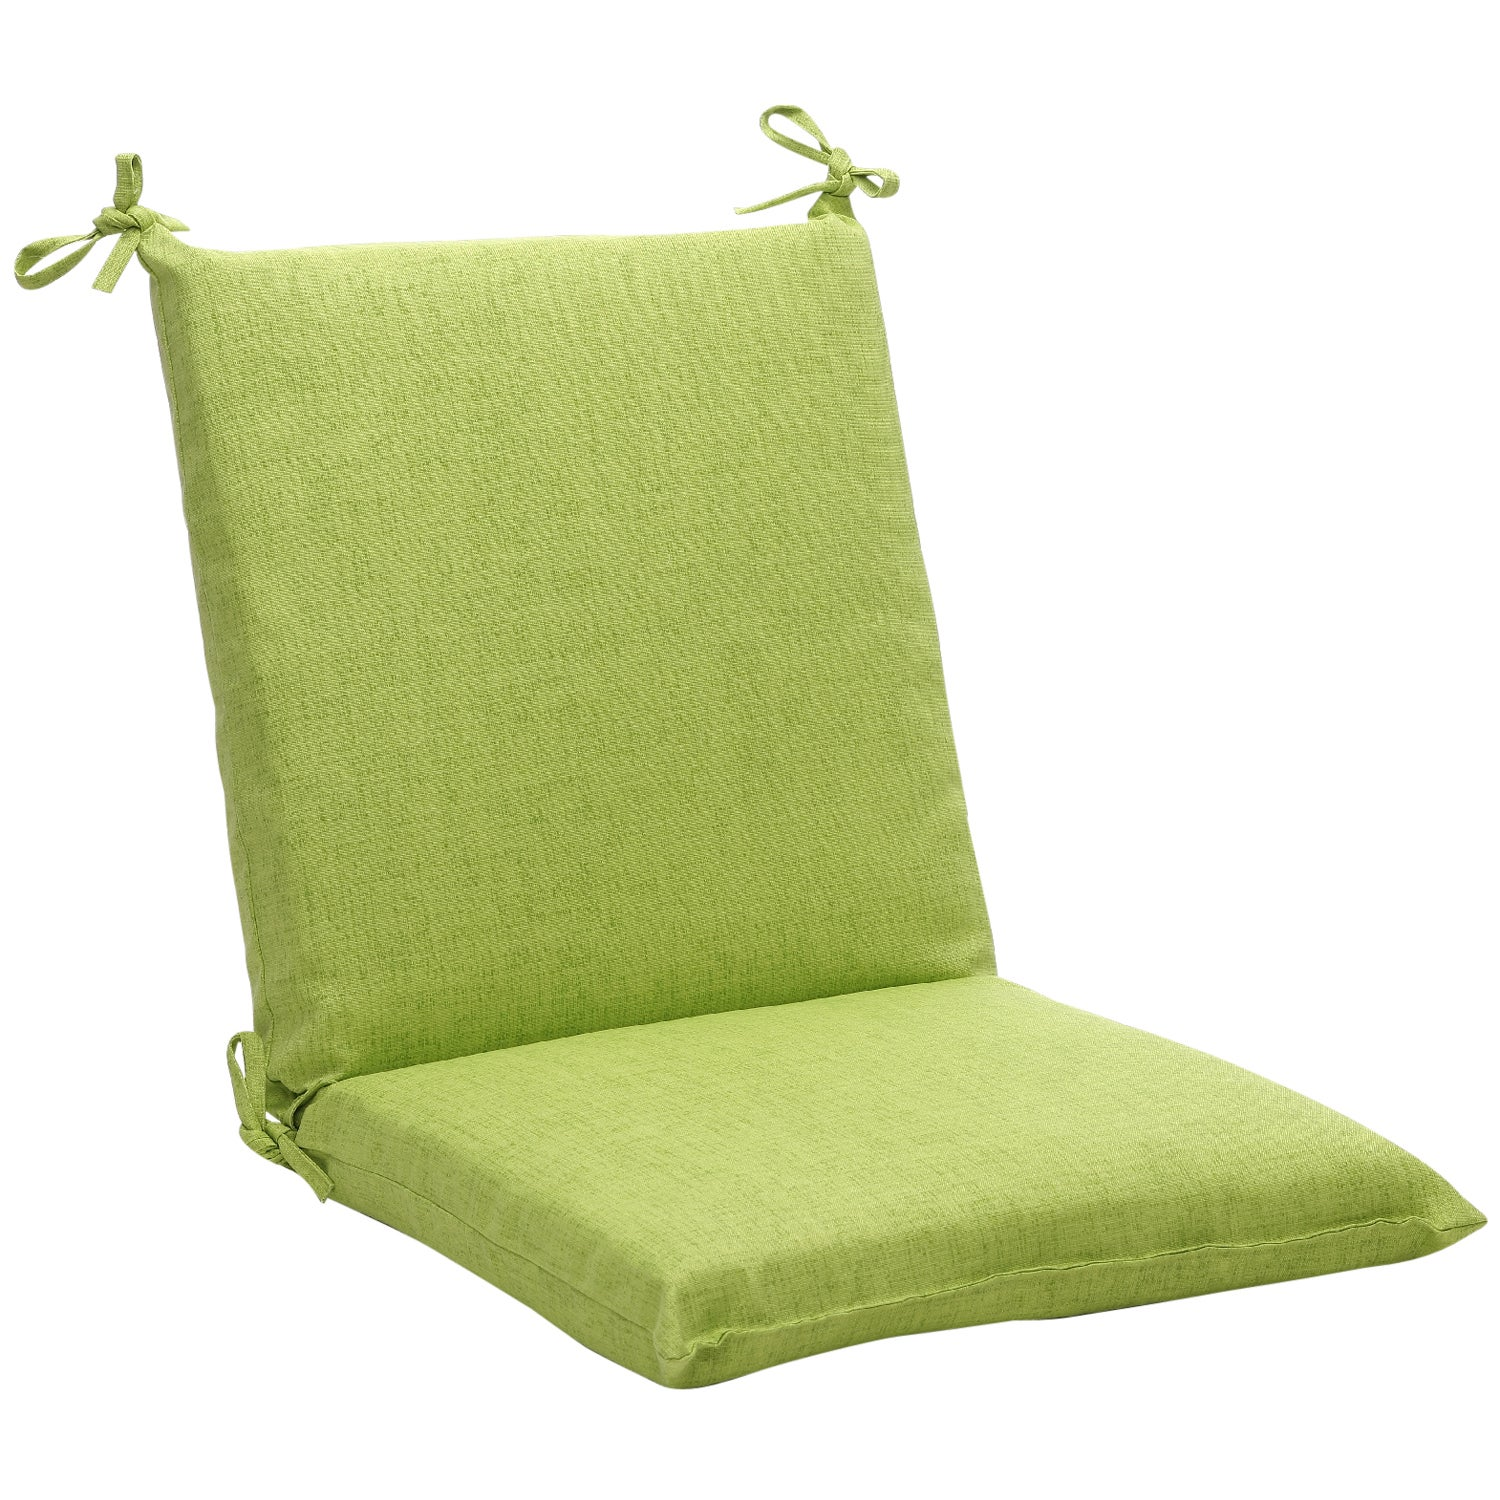 Patio furniture cushions and pillows example for Patio furniture cushions